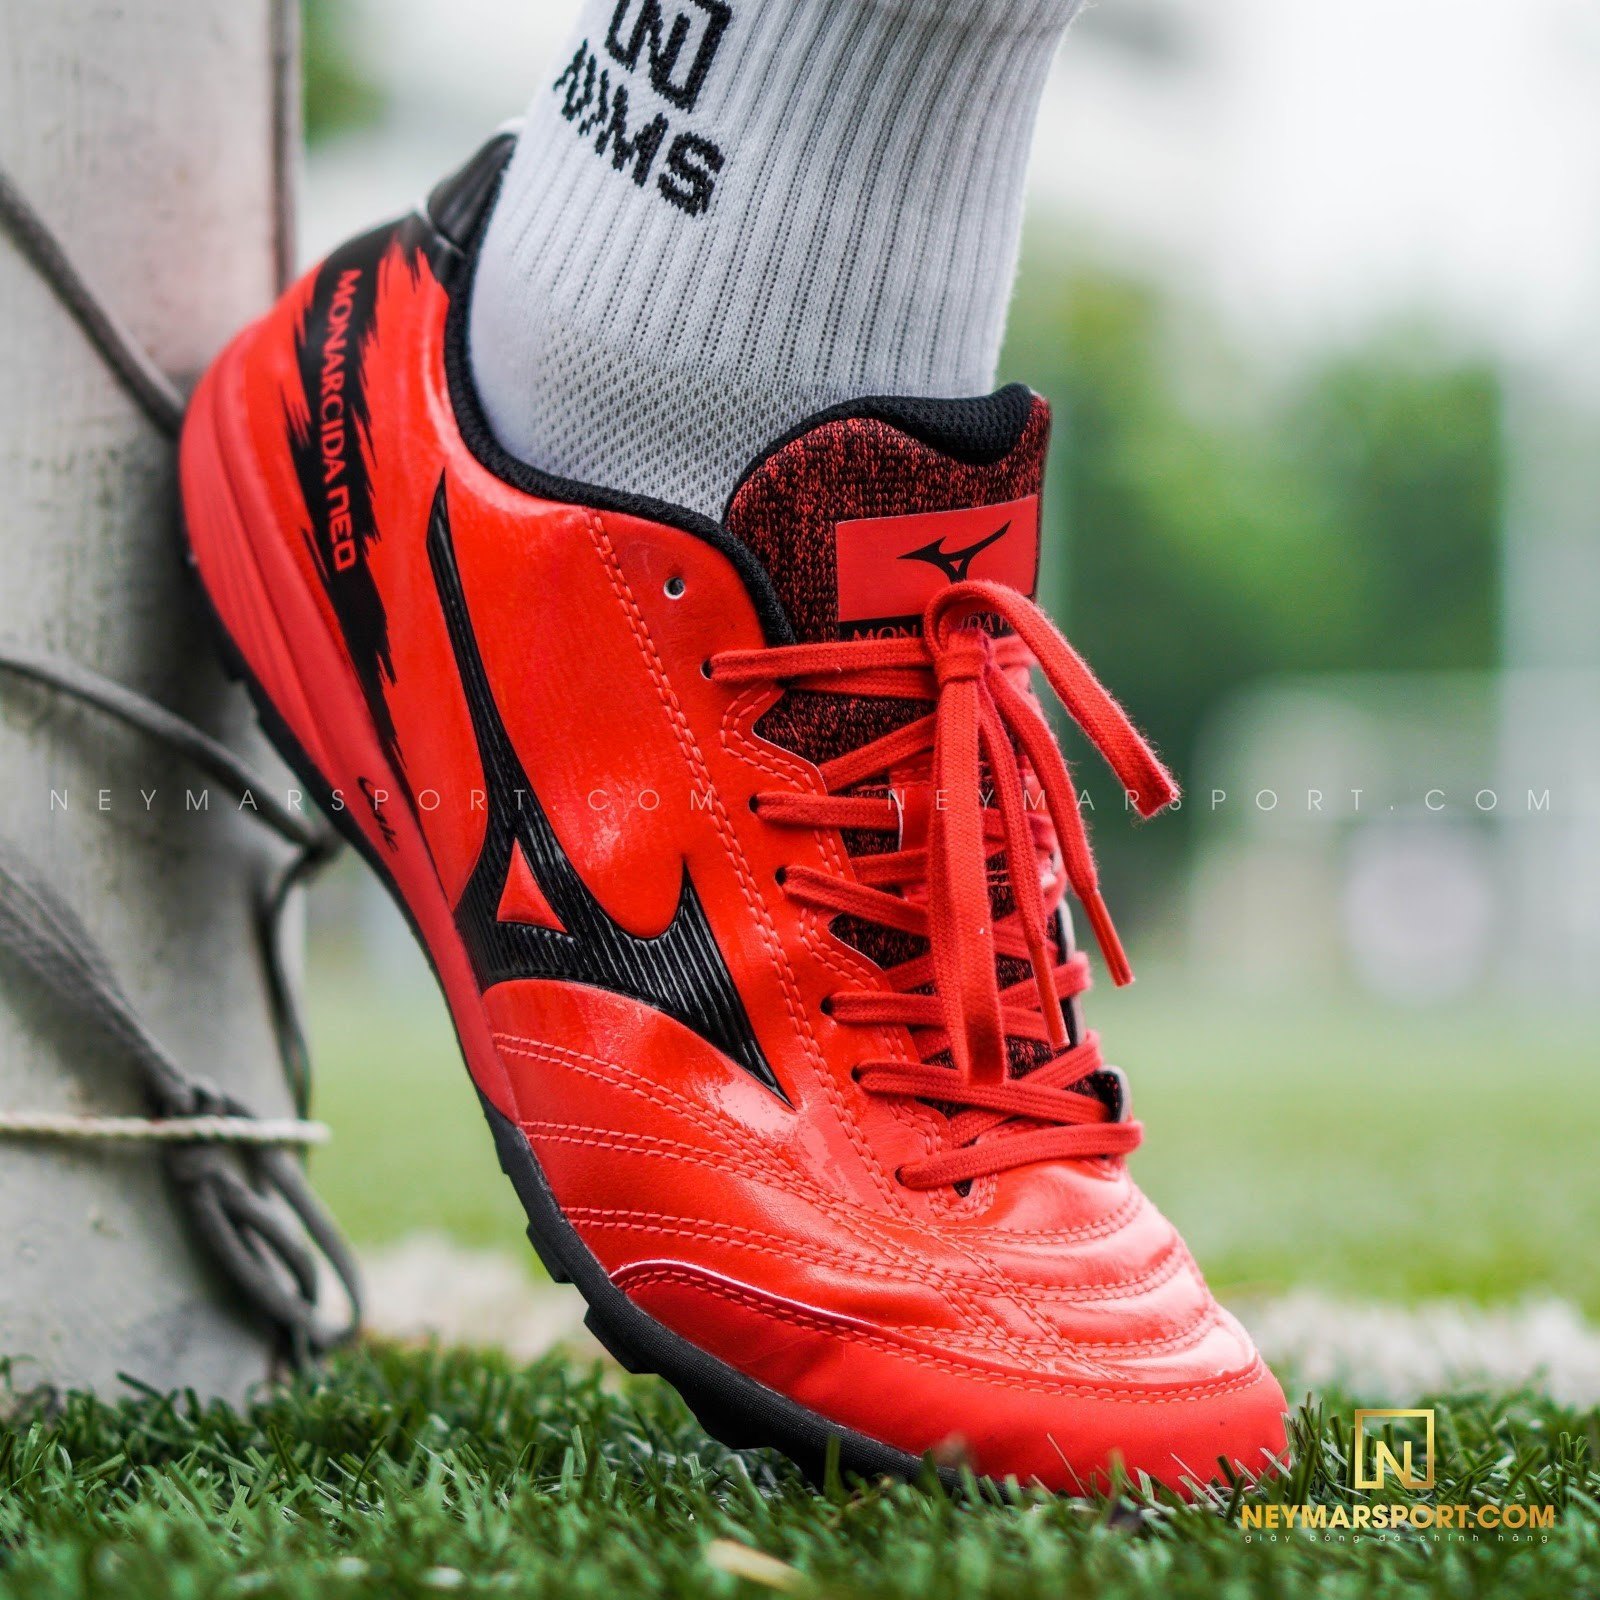 Giày đá bóng Mizuno Monarcida Neo Sala Pro TF - Ignition Red/Black